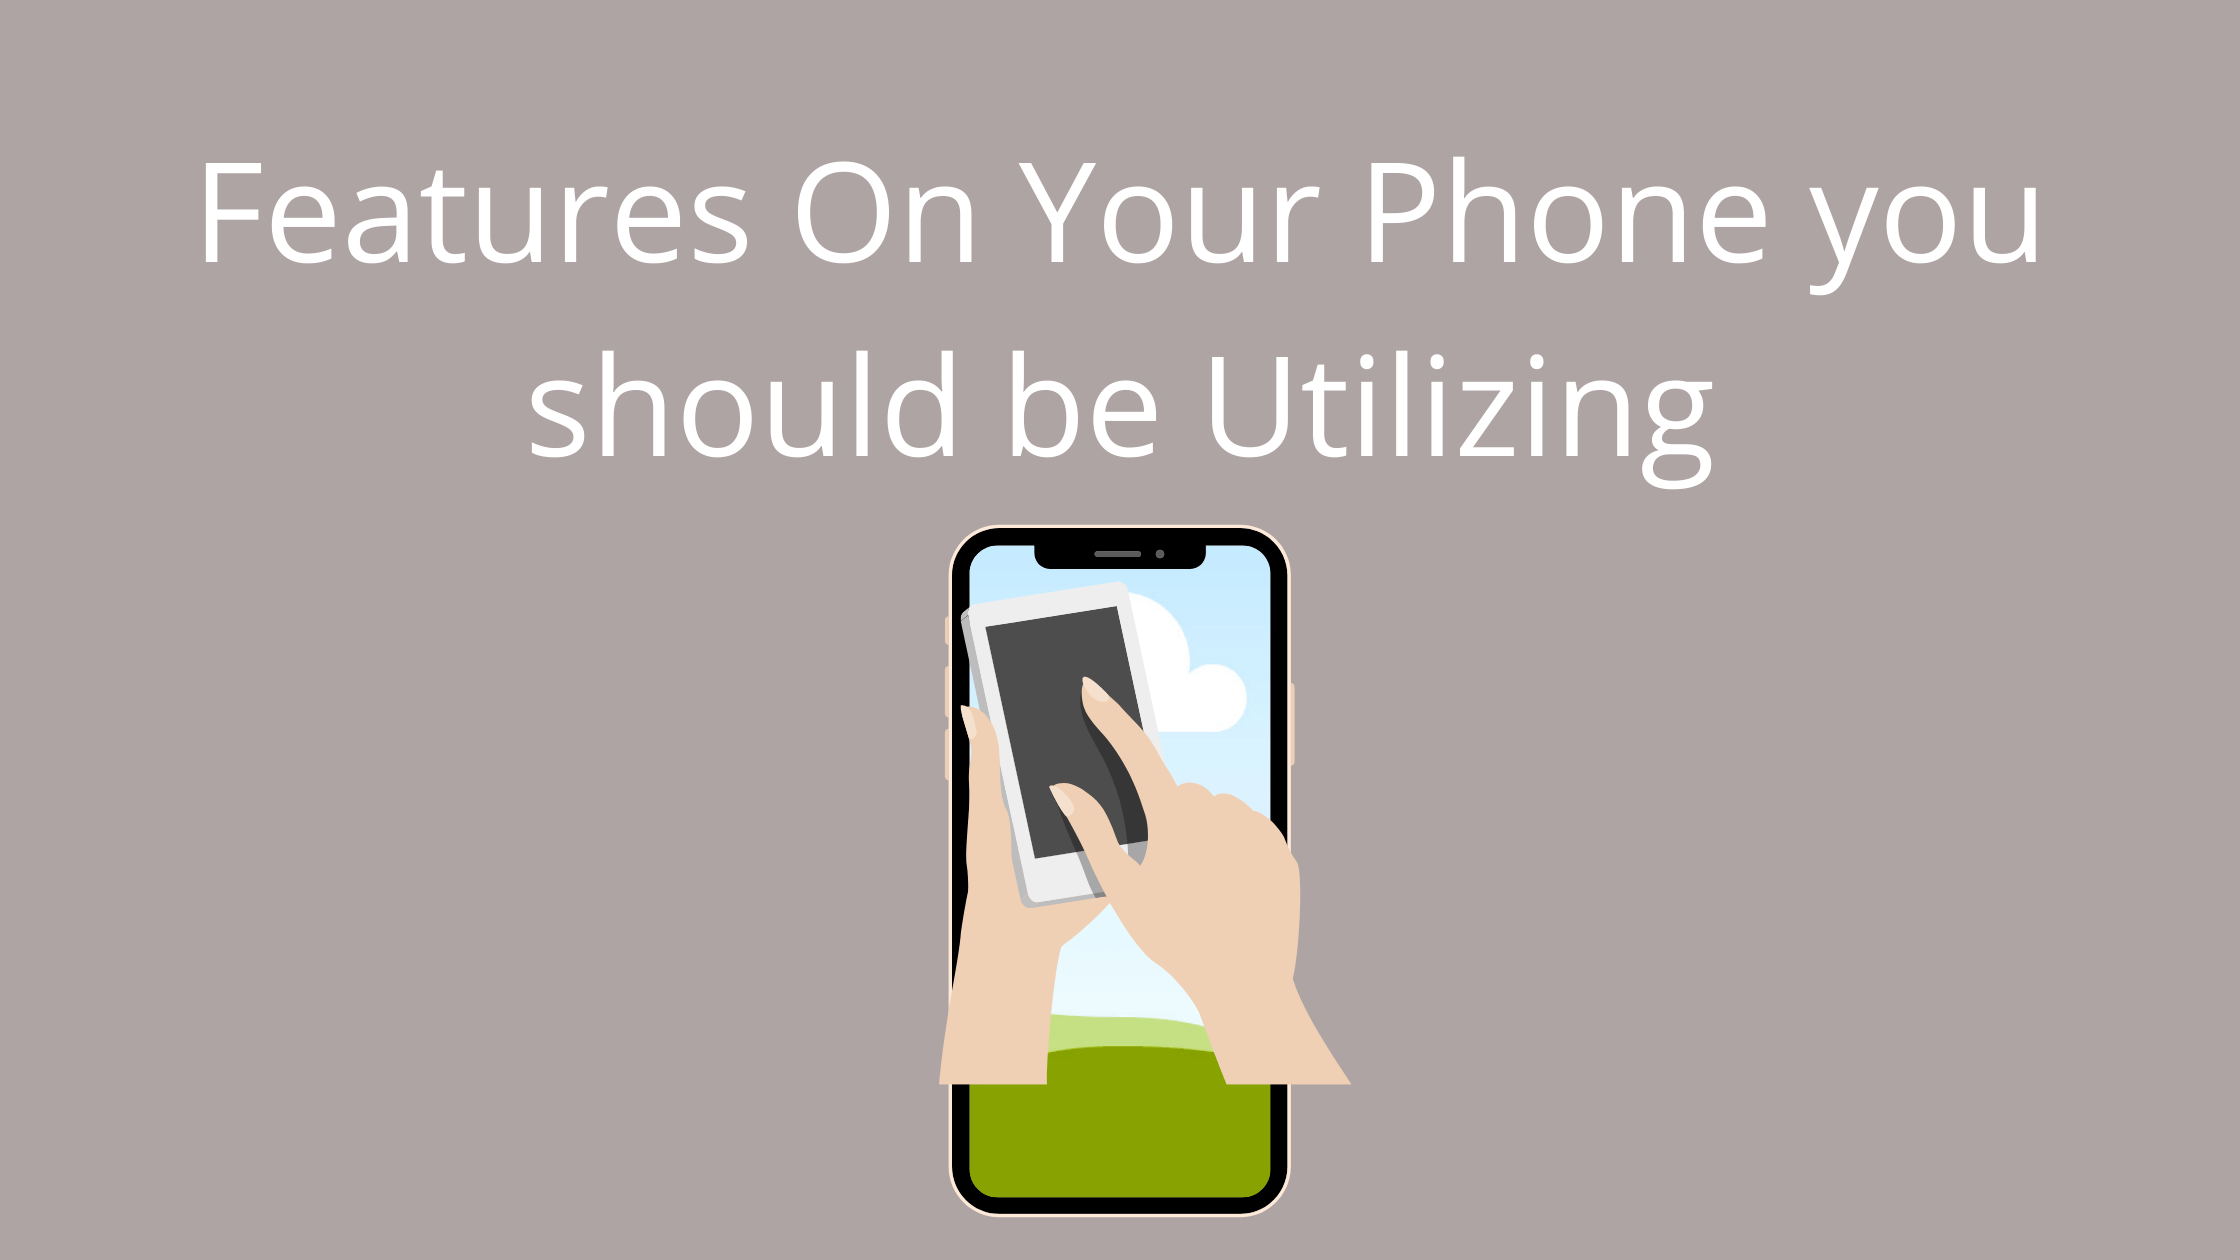 Features On Your Phone you should be Utilizing